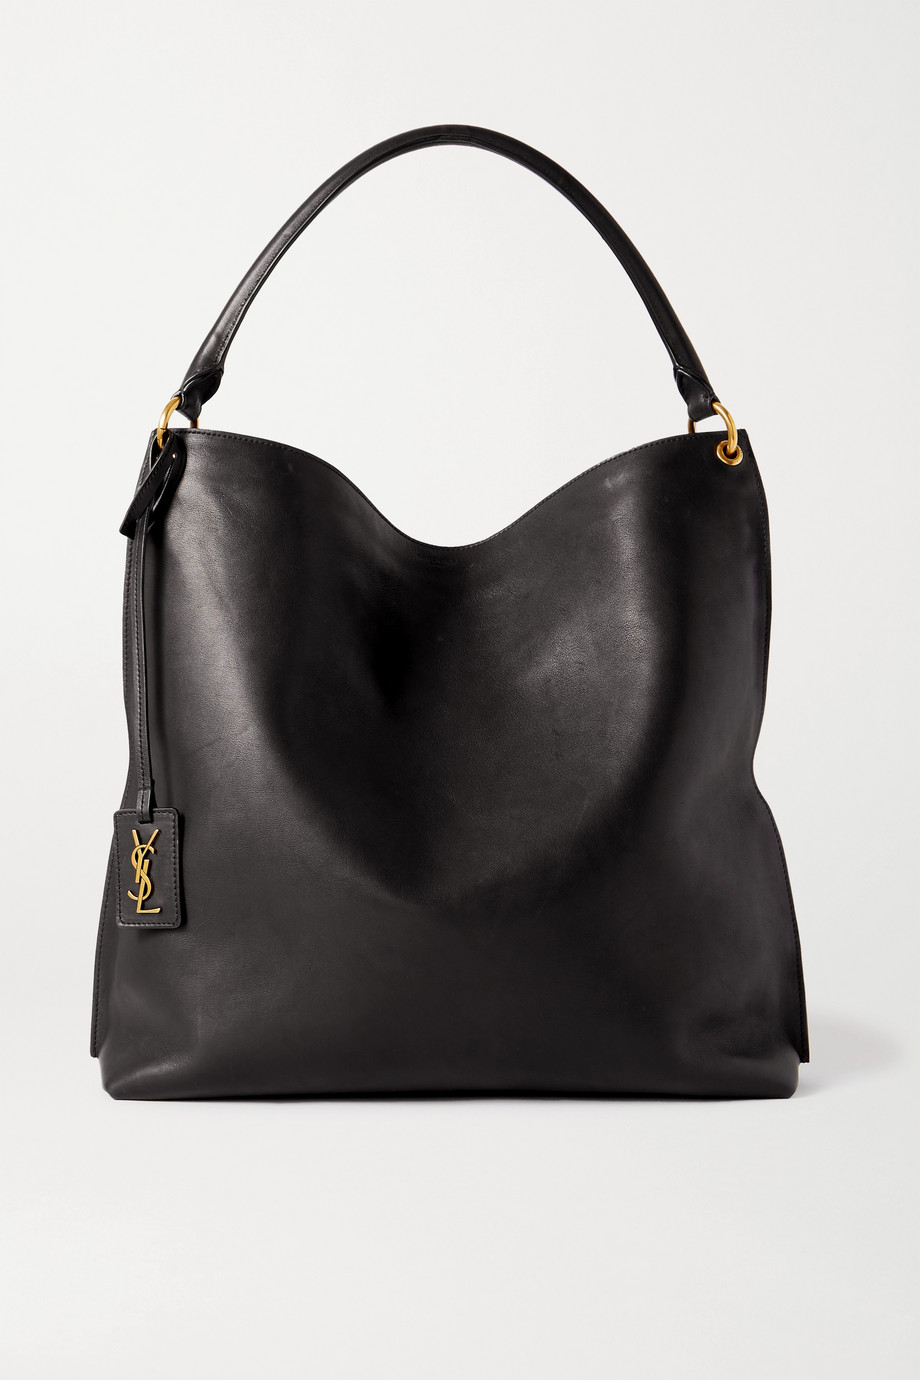 SAINT LAURENT Tag leather tote